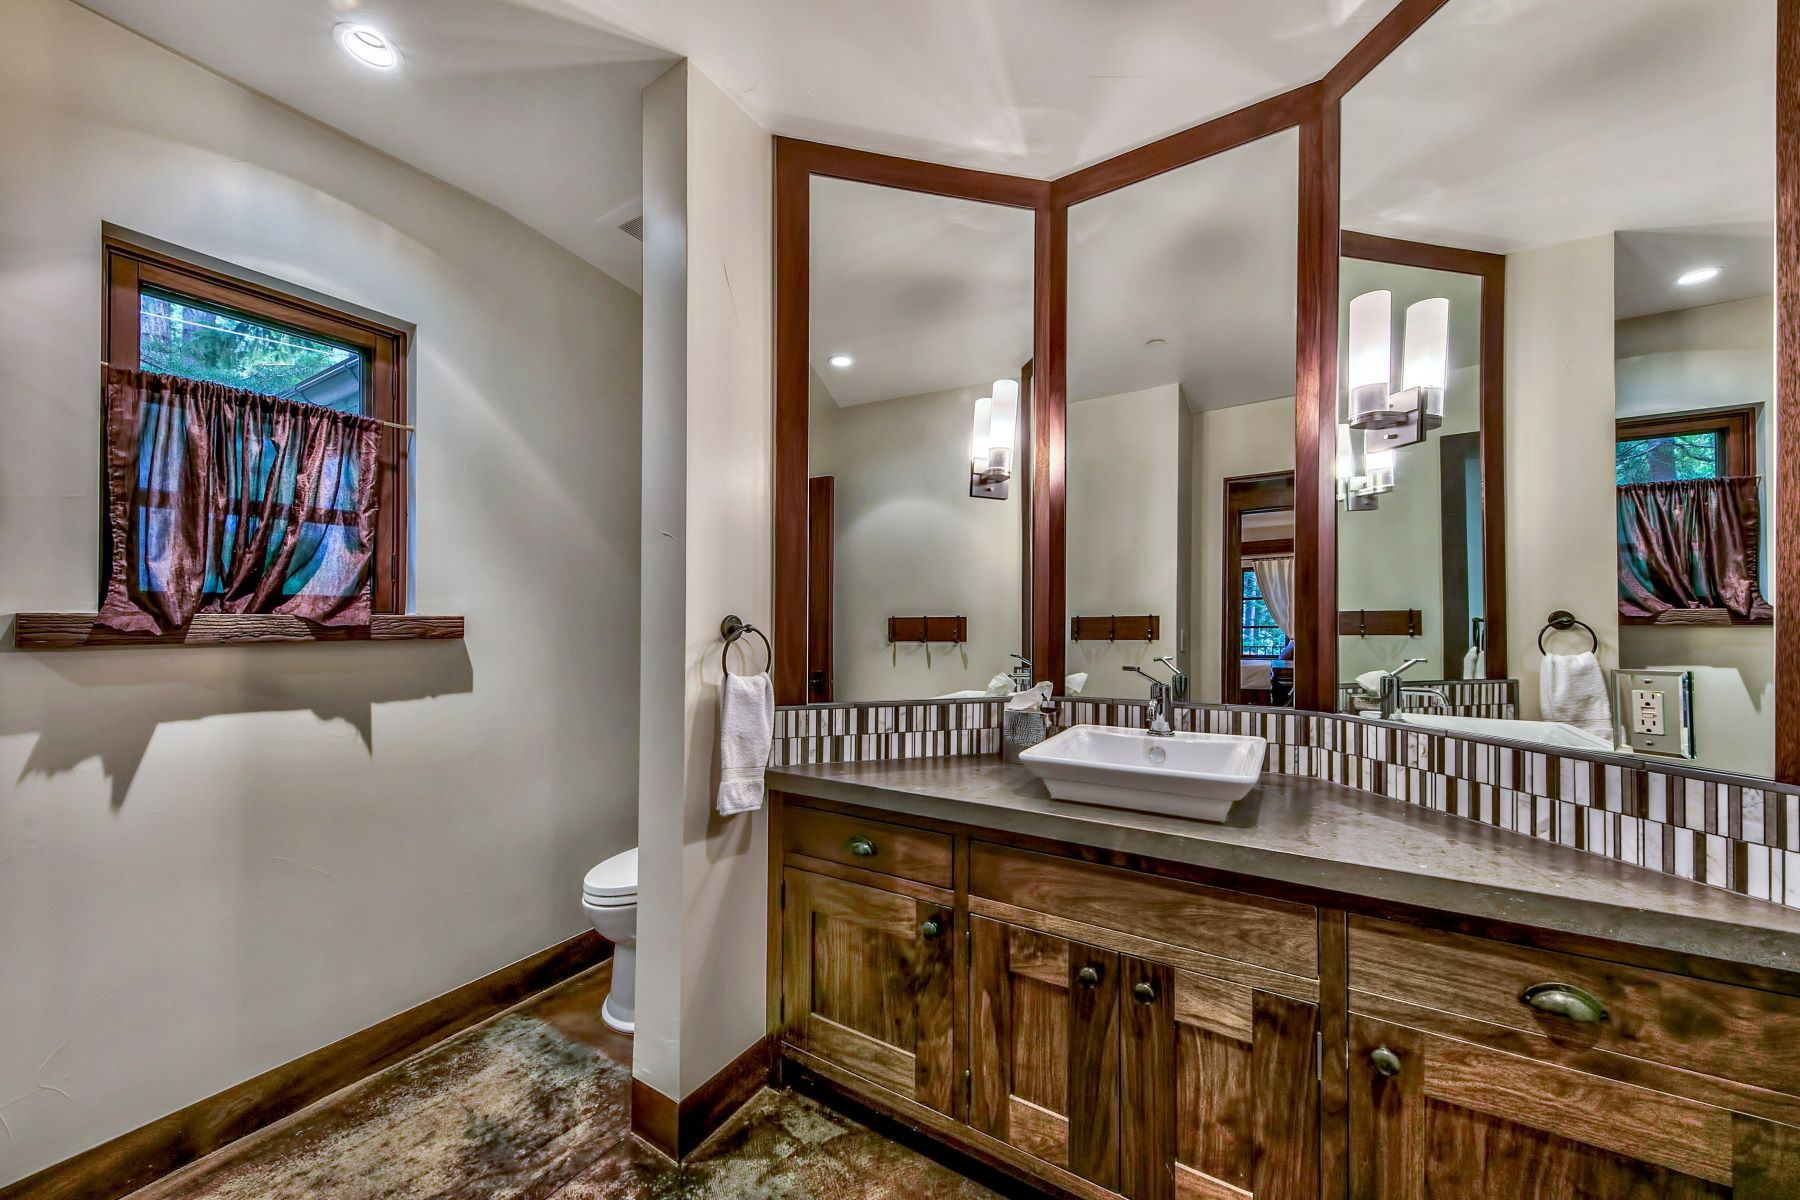 Additional photo for property listing at 1550 Debra Lane, Incline Village, NV 96145 1550 Debra Lane Incline Village, 内华达州 89451 美国